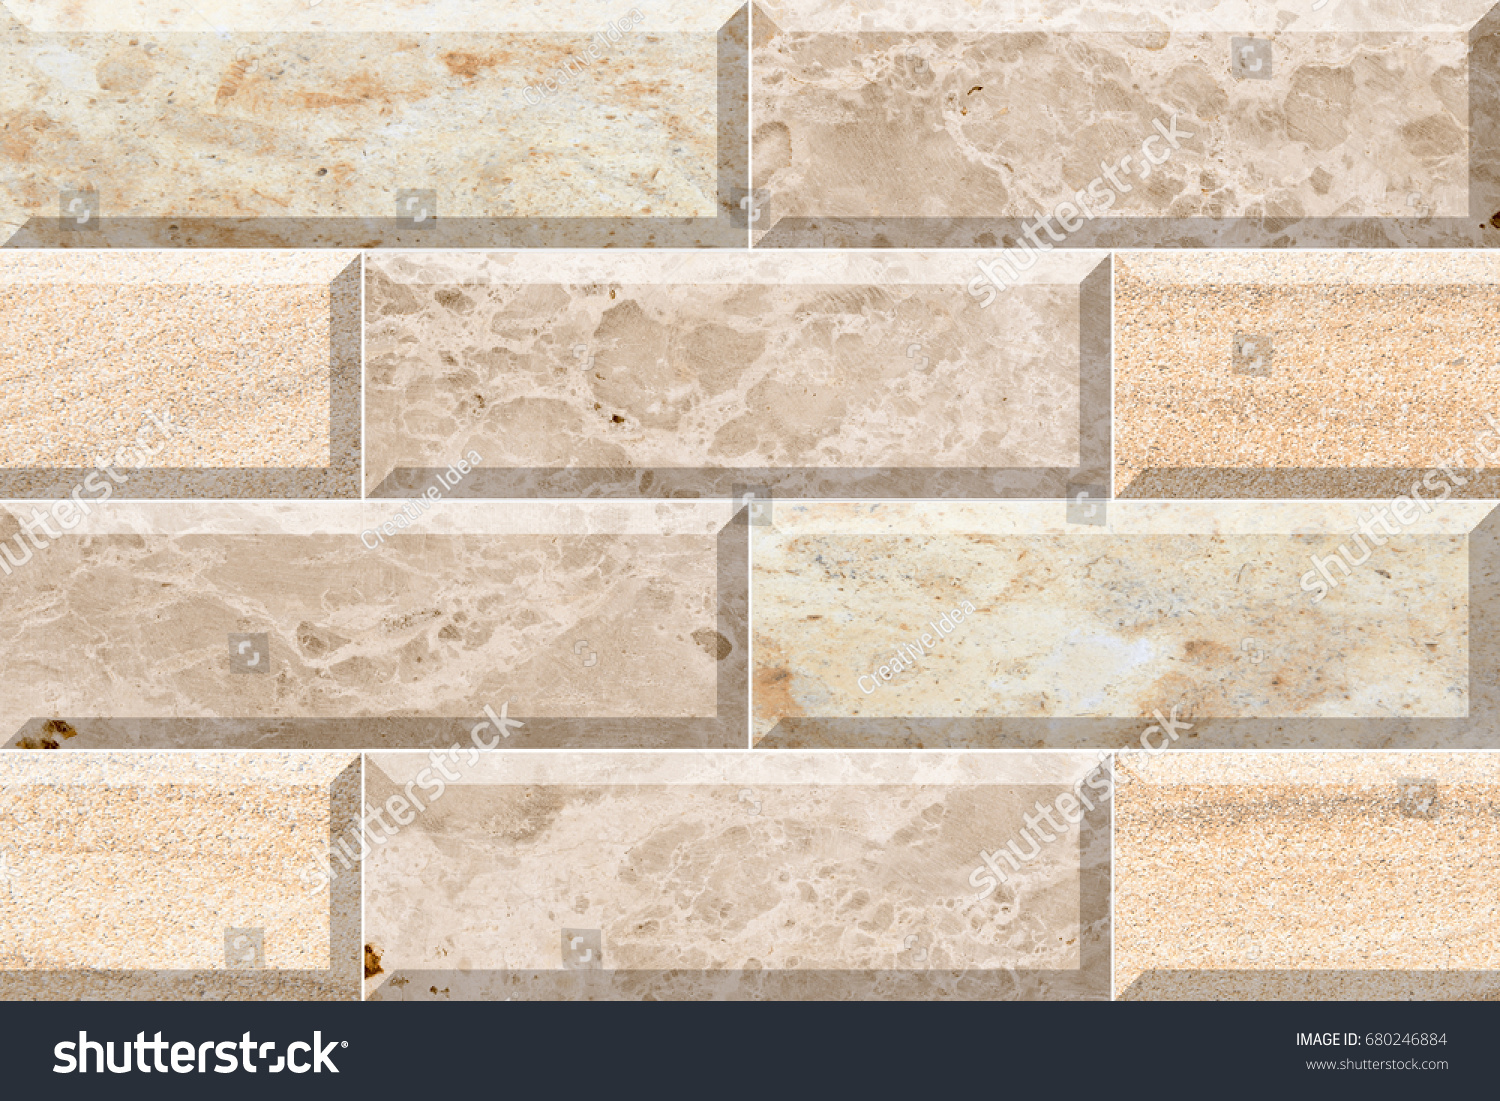 Abstract Home Decorative Brick Wall Tiles Stock Illustration ...